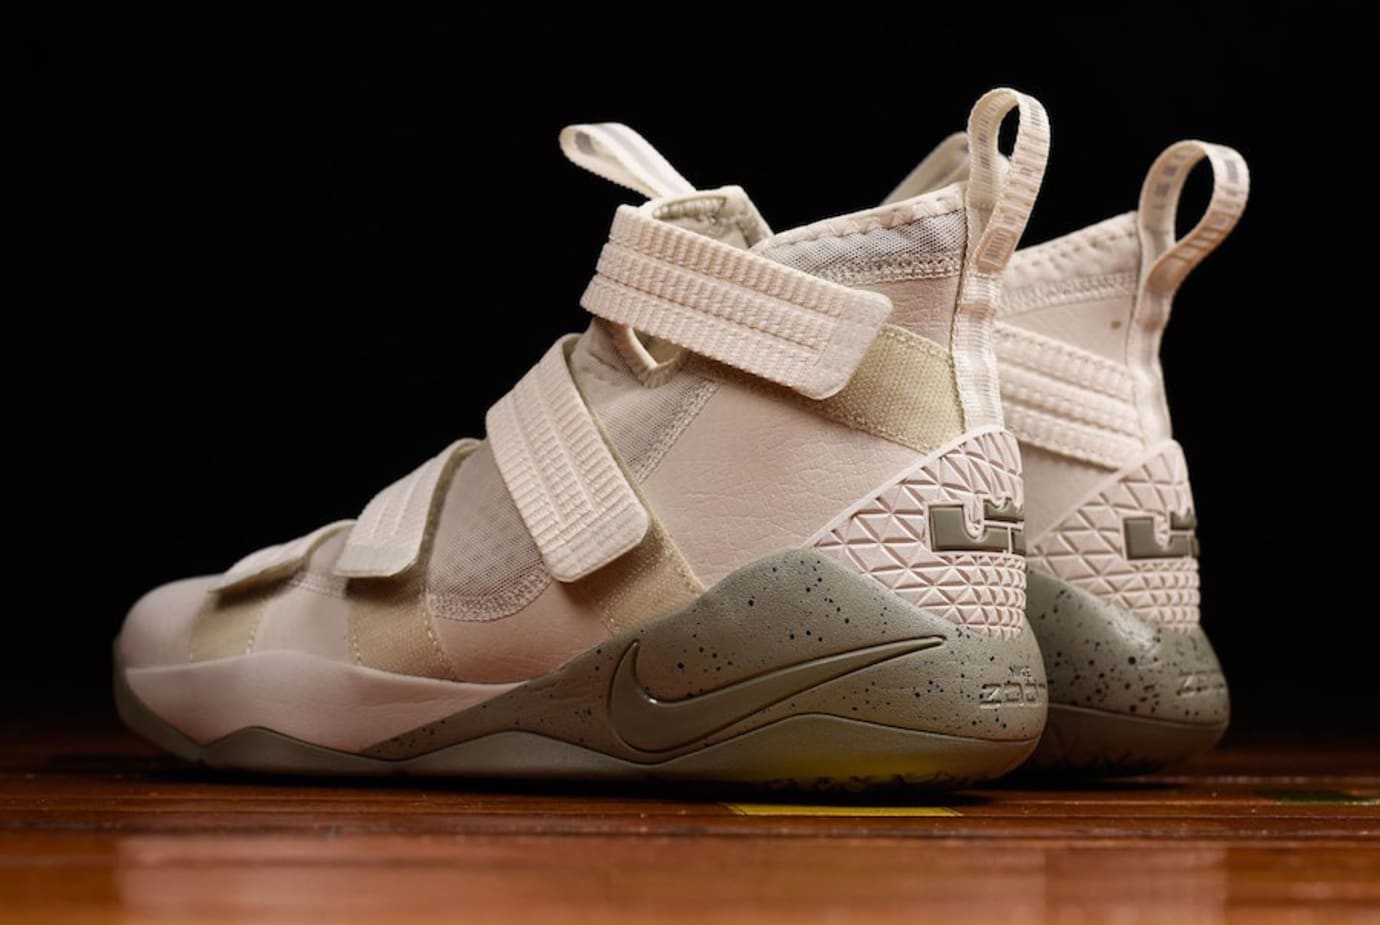 a652f8e14e1c9 Nike LeBron Soldier 11 Light Bone Dark Stucco Release Date Back 897646-005